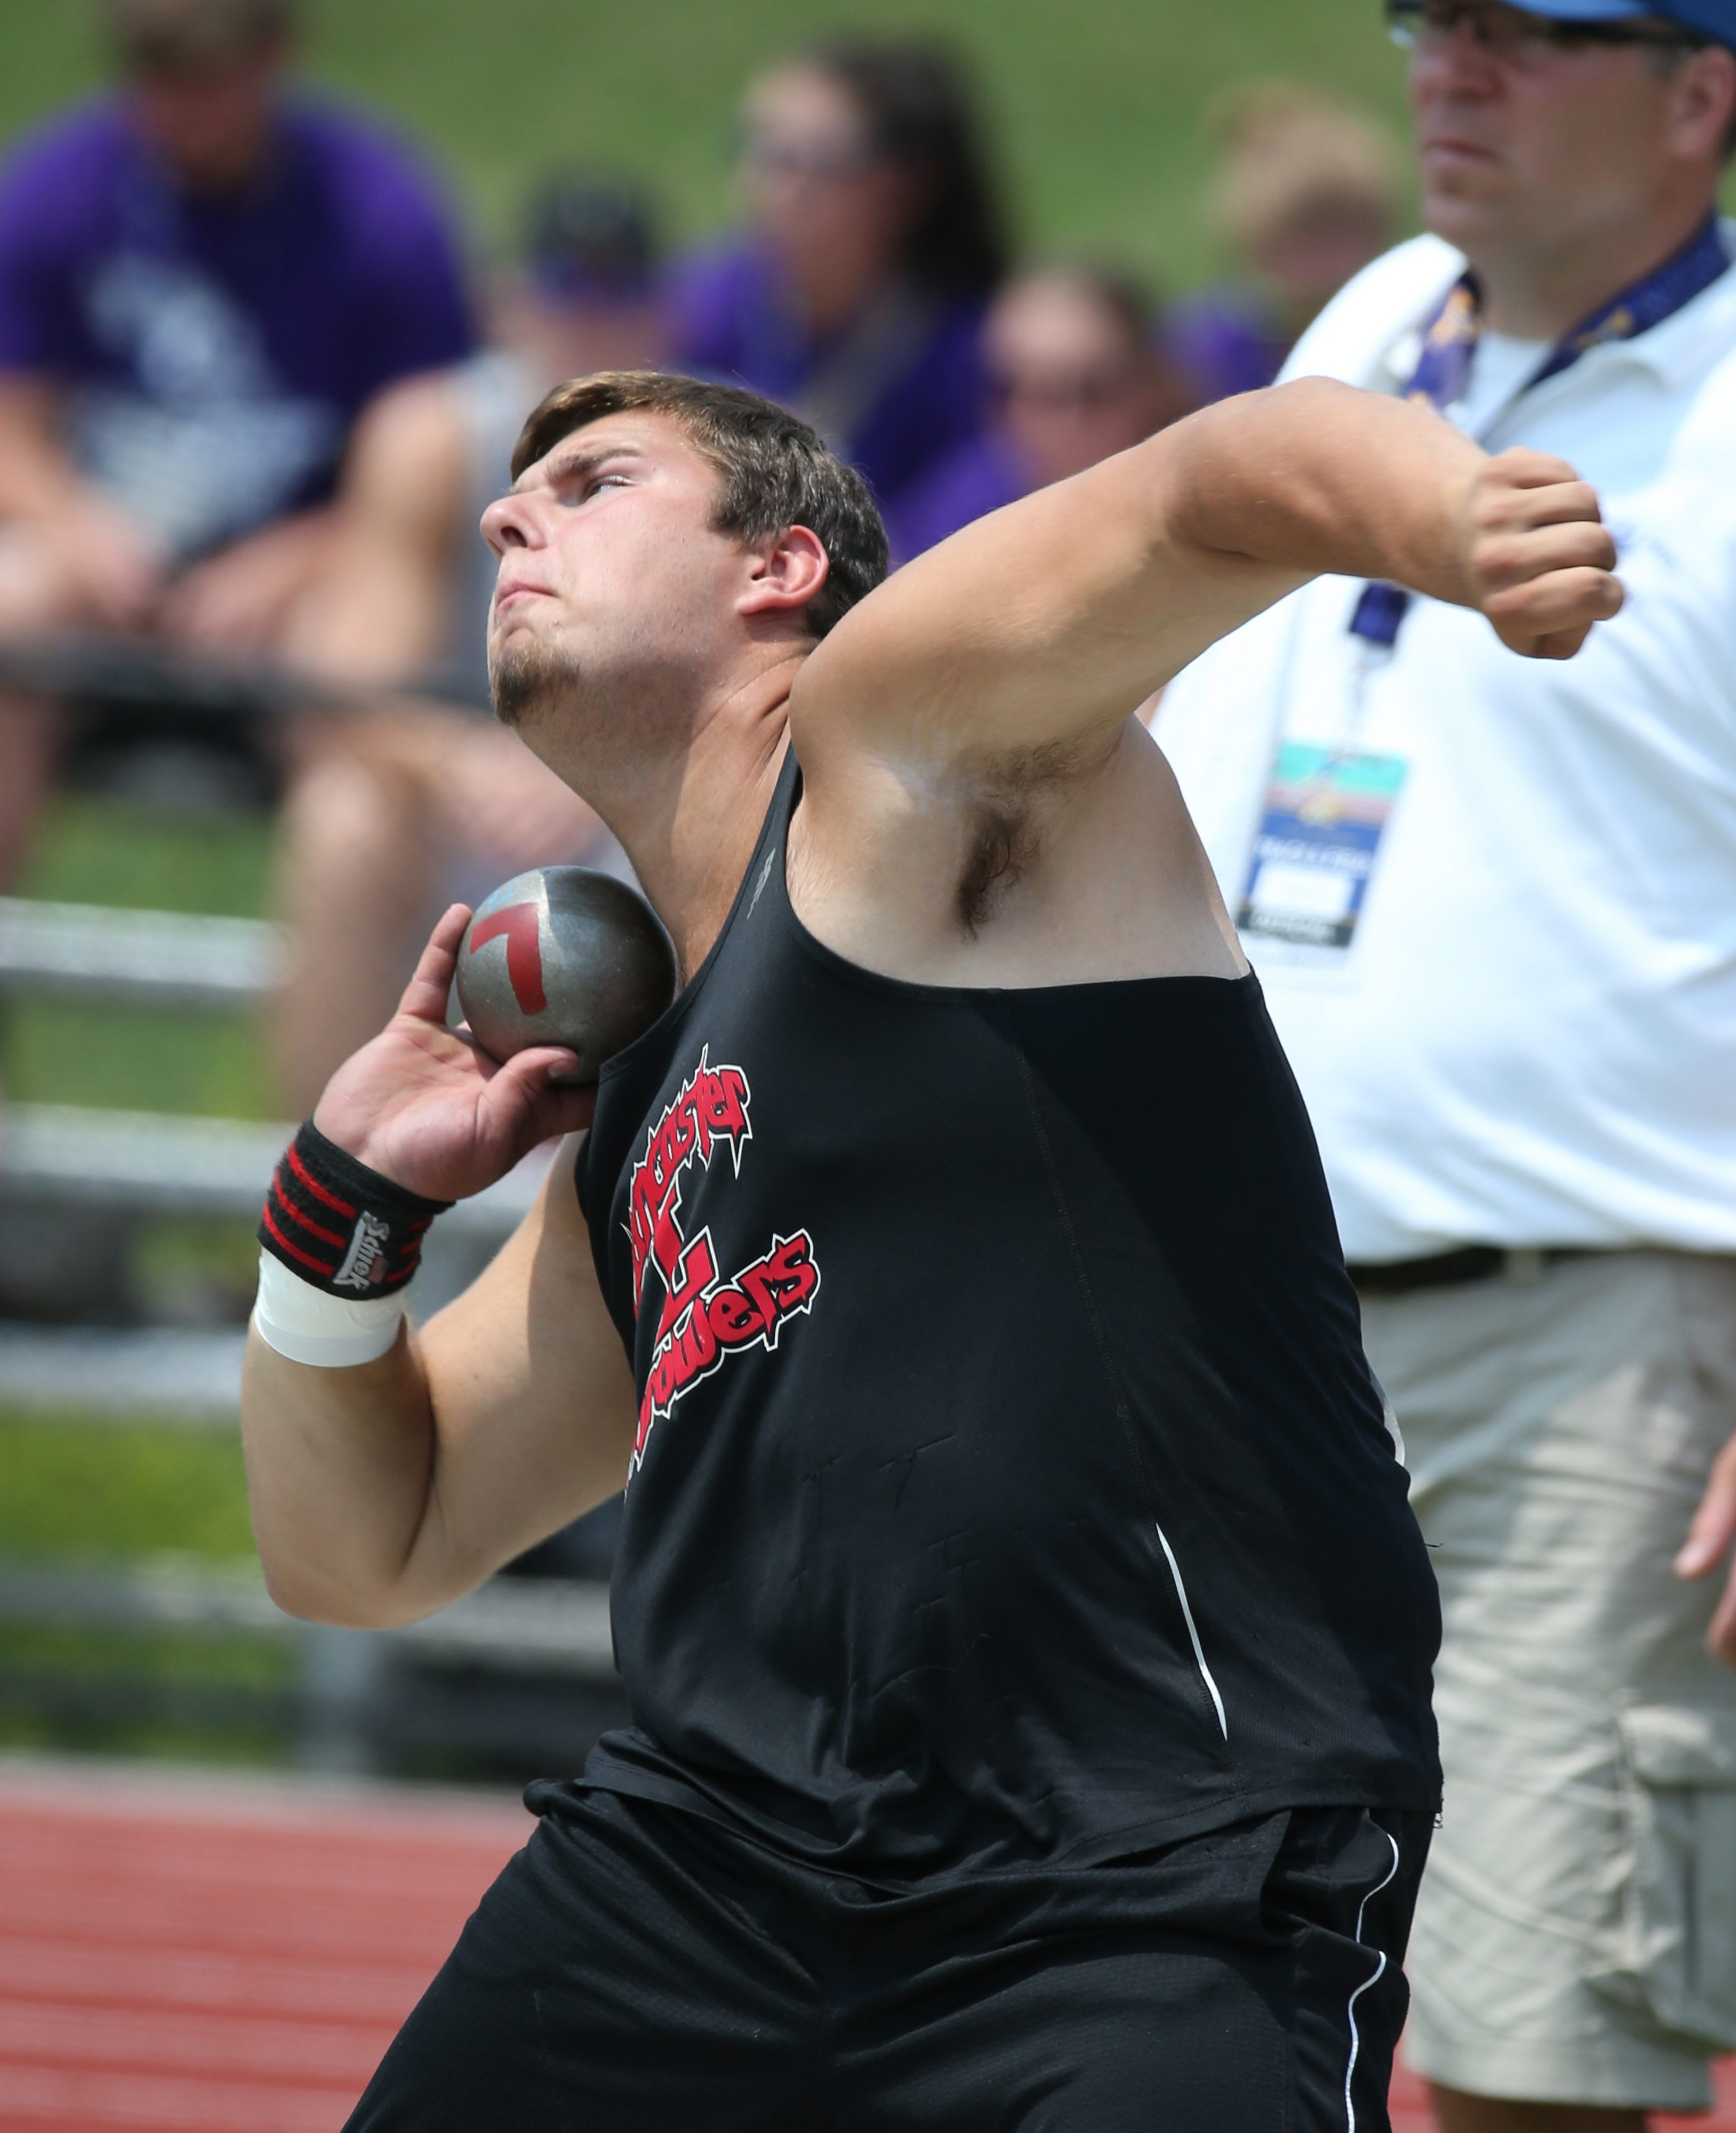 Lancaster's Colin Blair competes  in the shot put event during the New York State Track & Field Championship at the University of Albany.